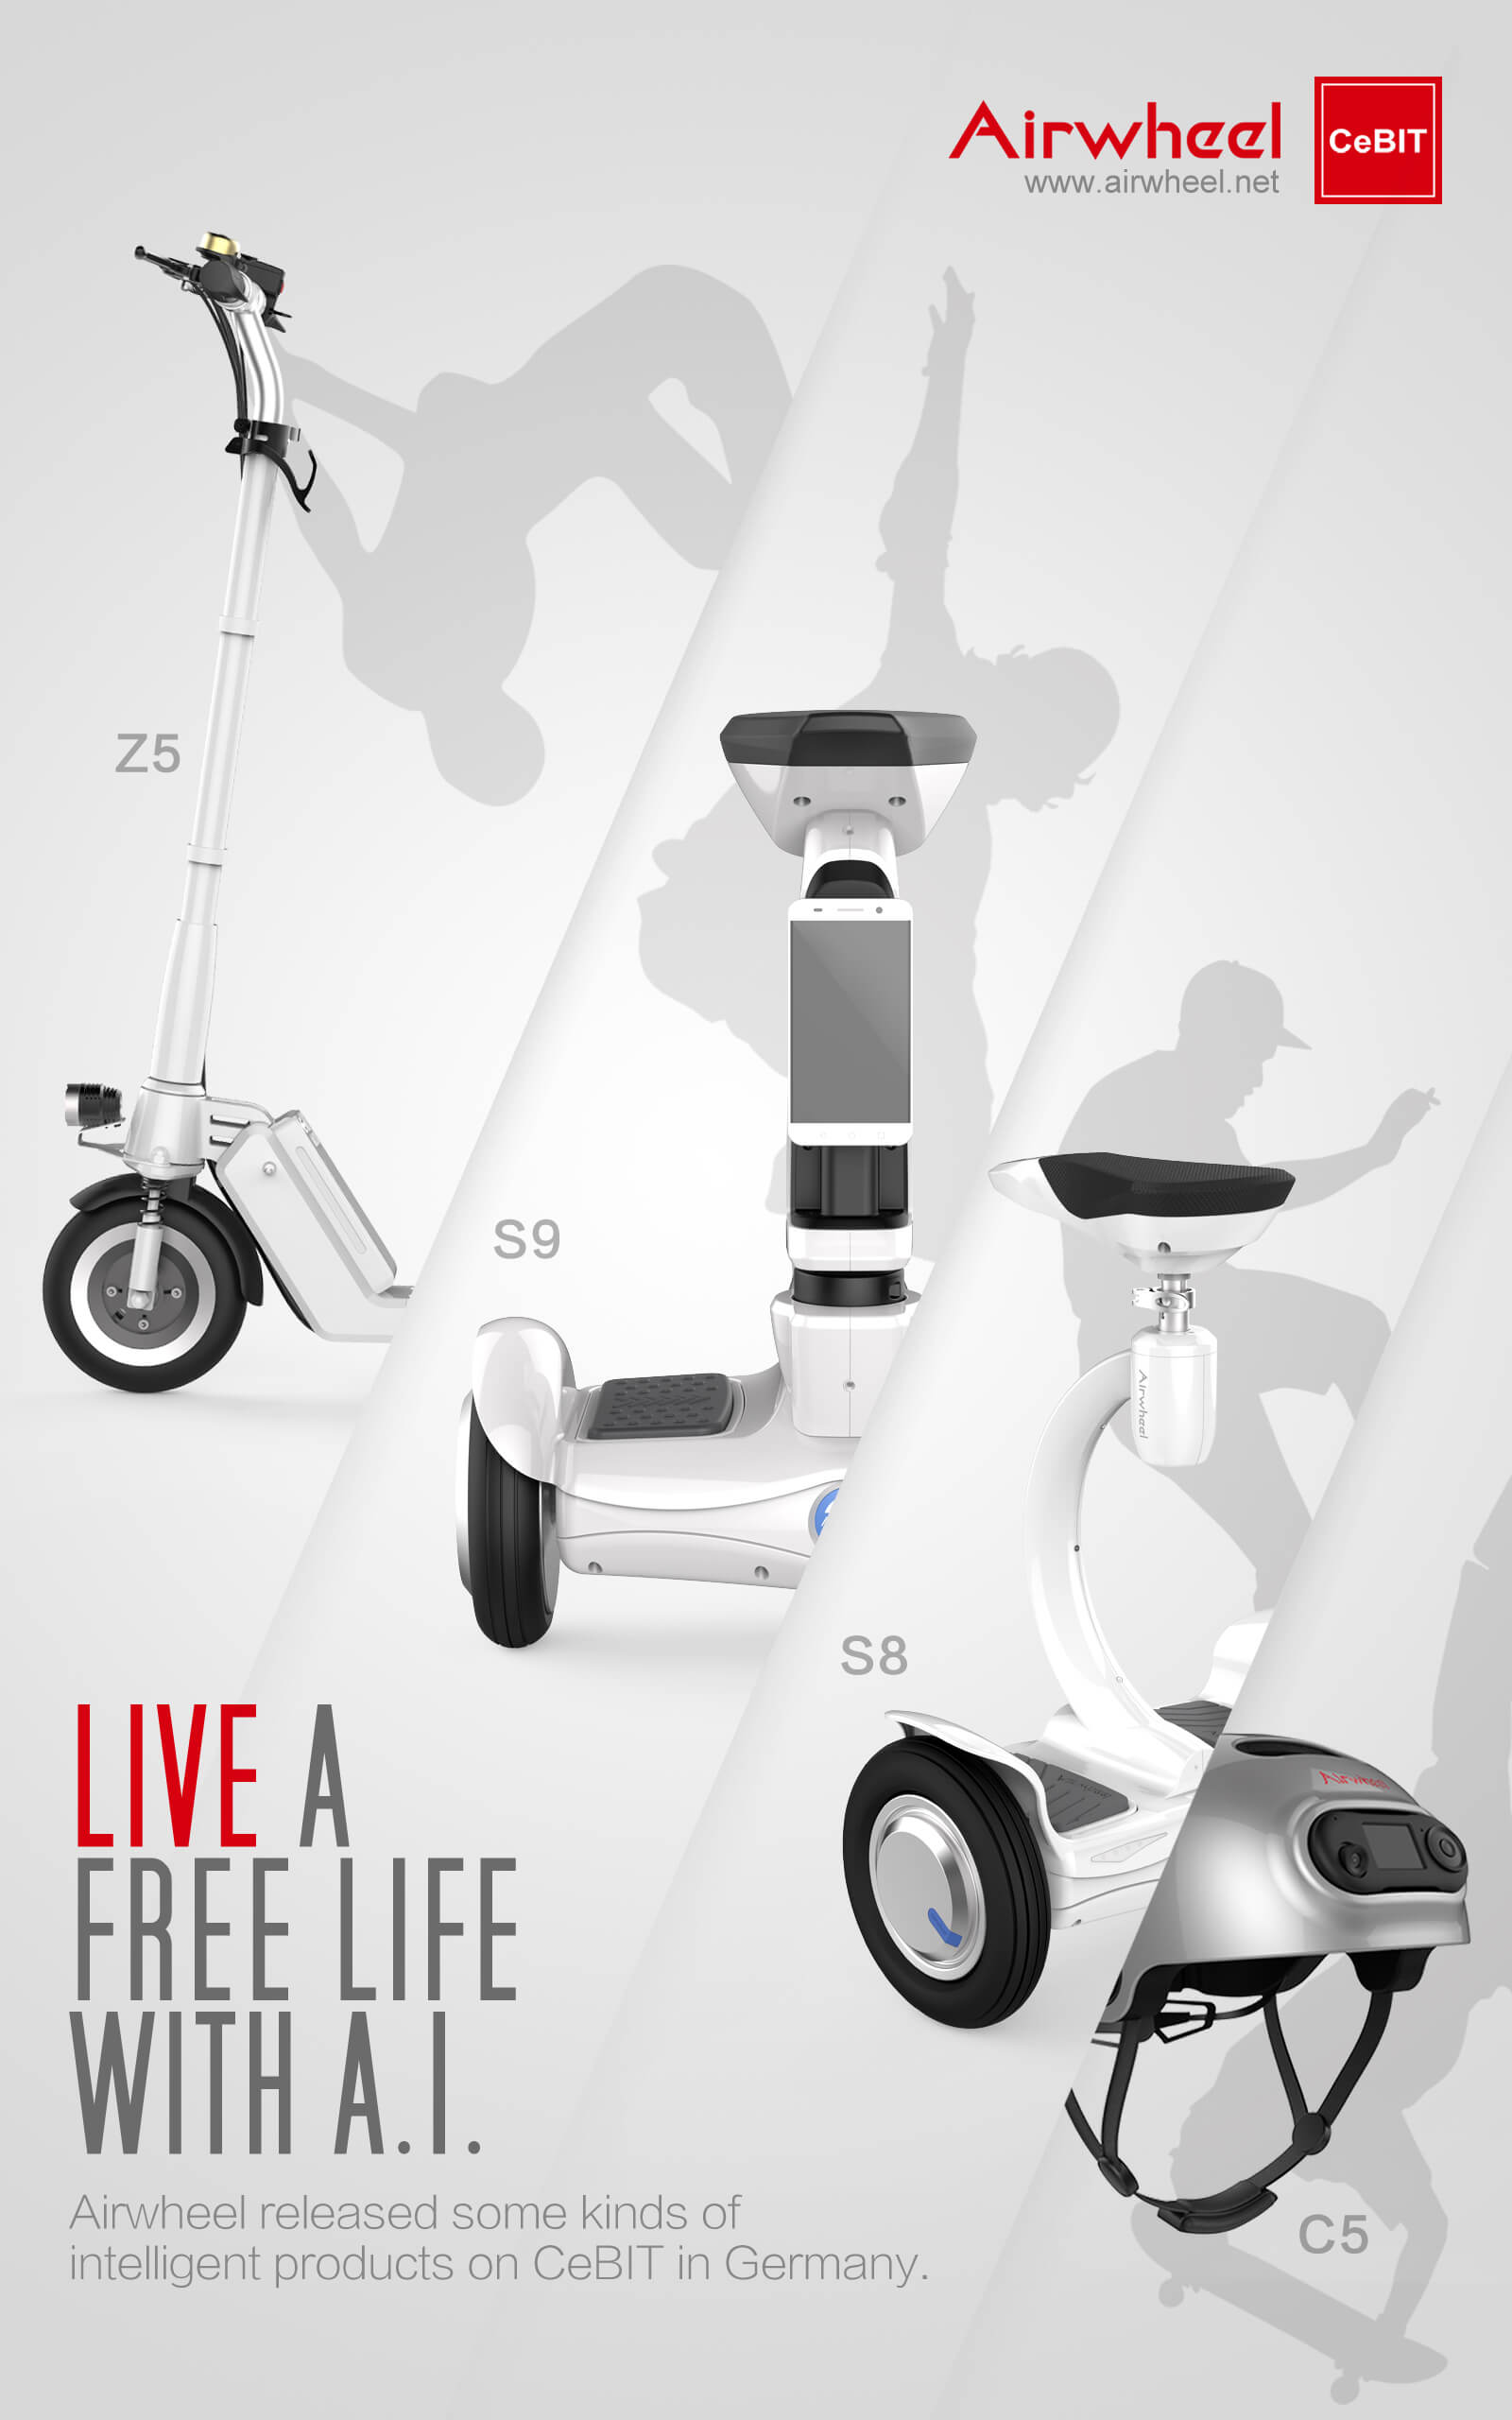 Airwheel CeBIT